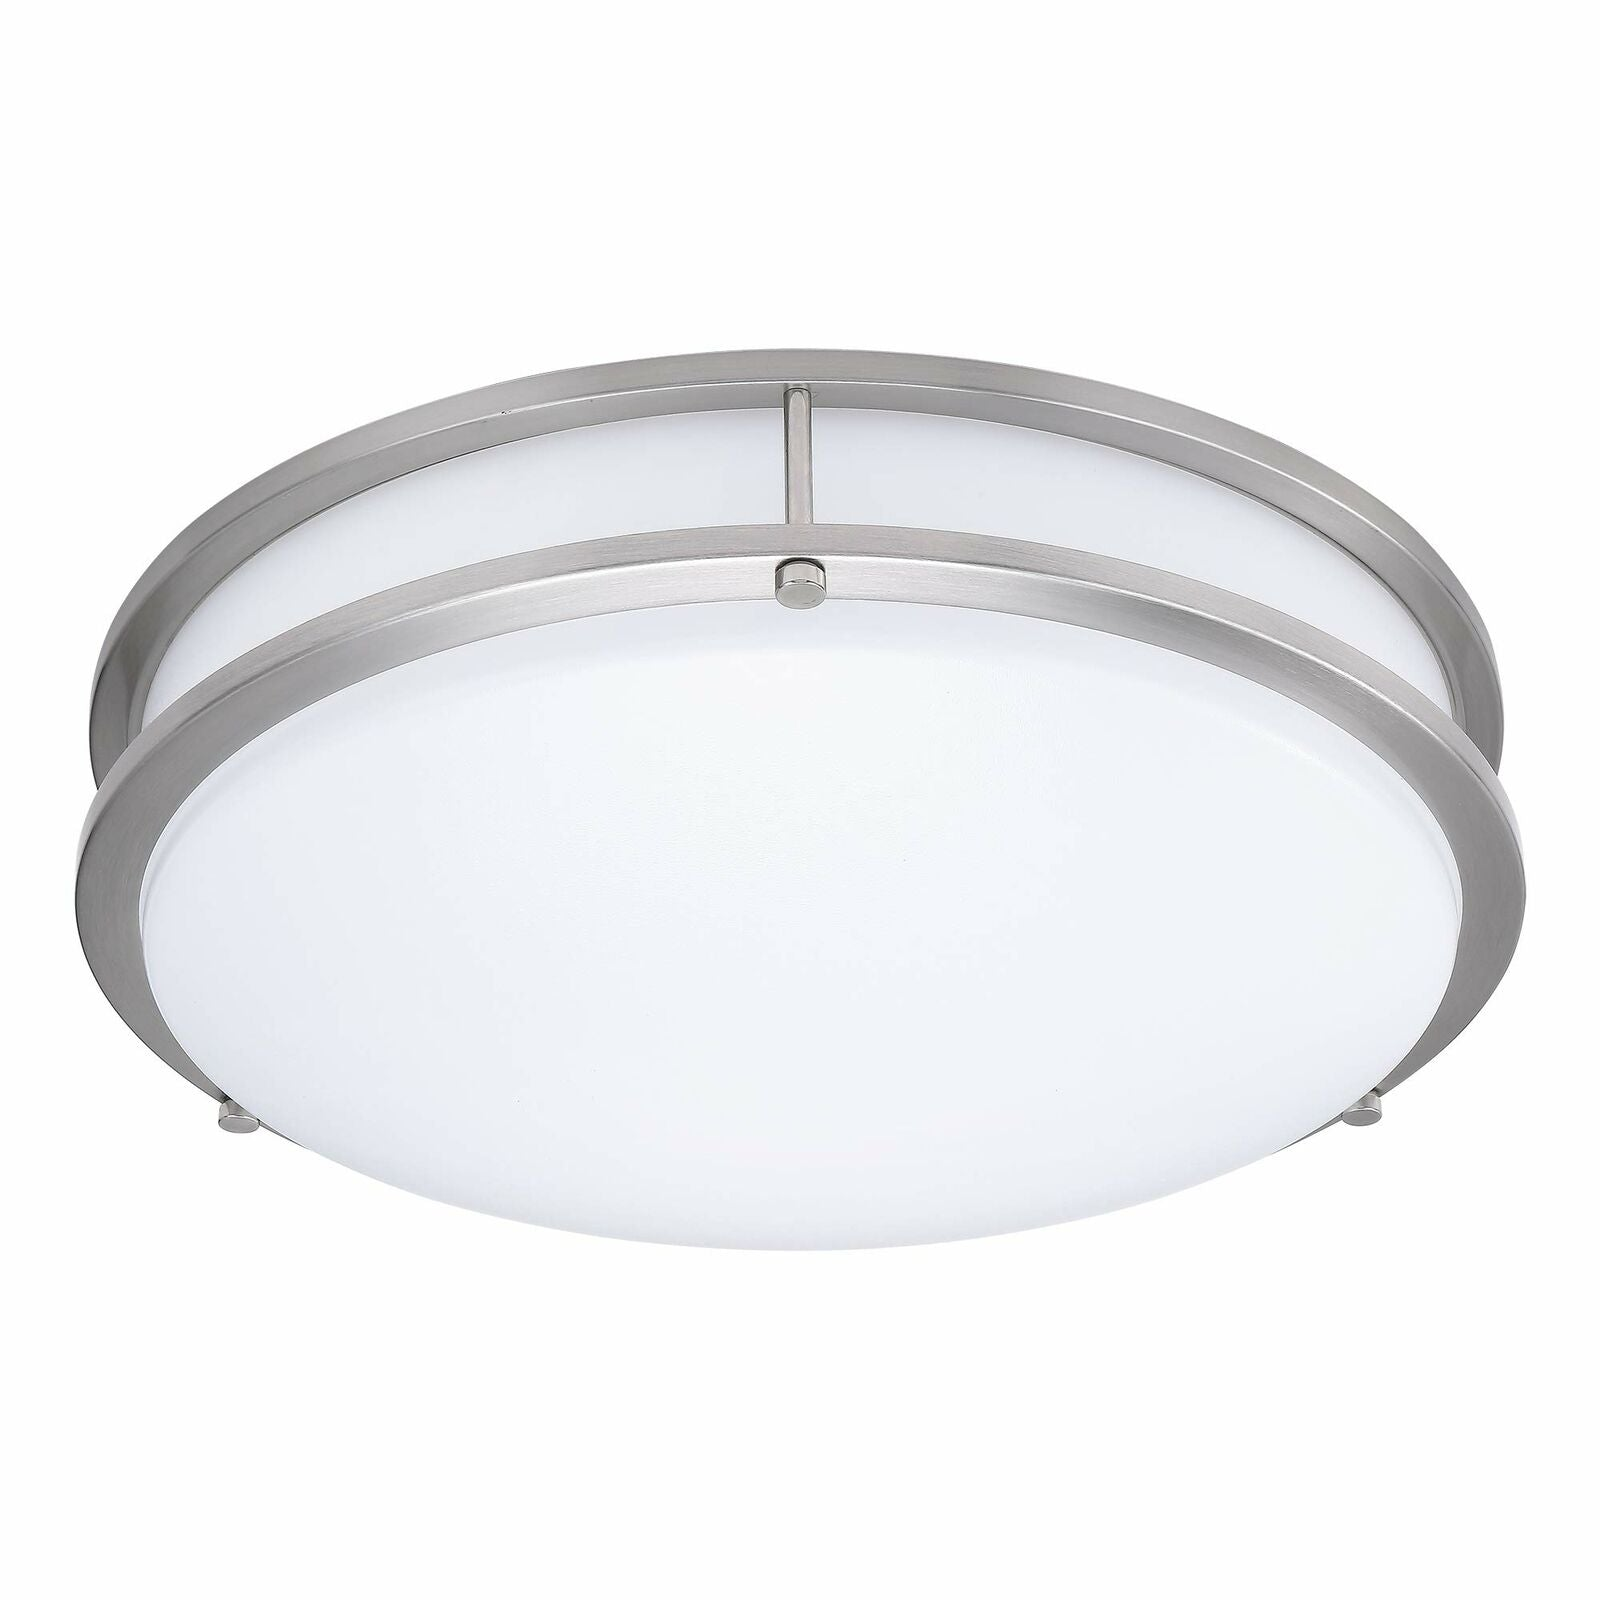 QPlus 14 Inch LED Architectural Flush Mount 25W - Brushed Nickel - QPlus Home - Brighten Your Life